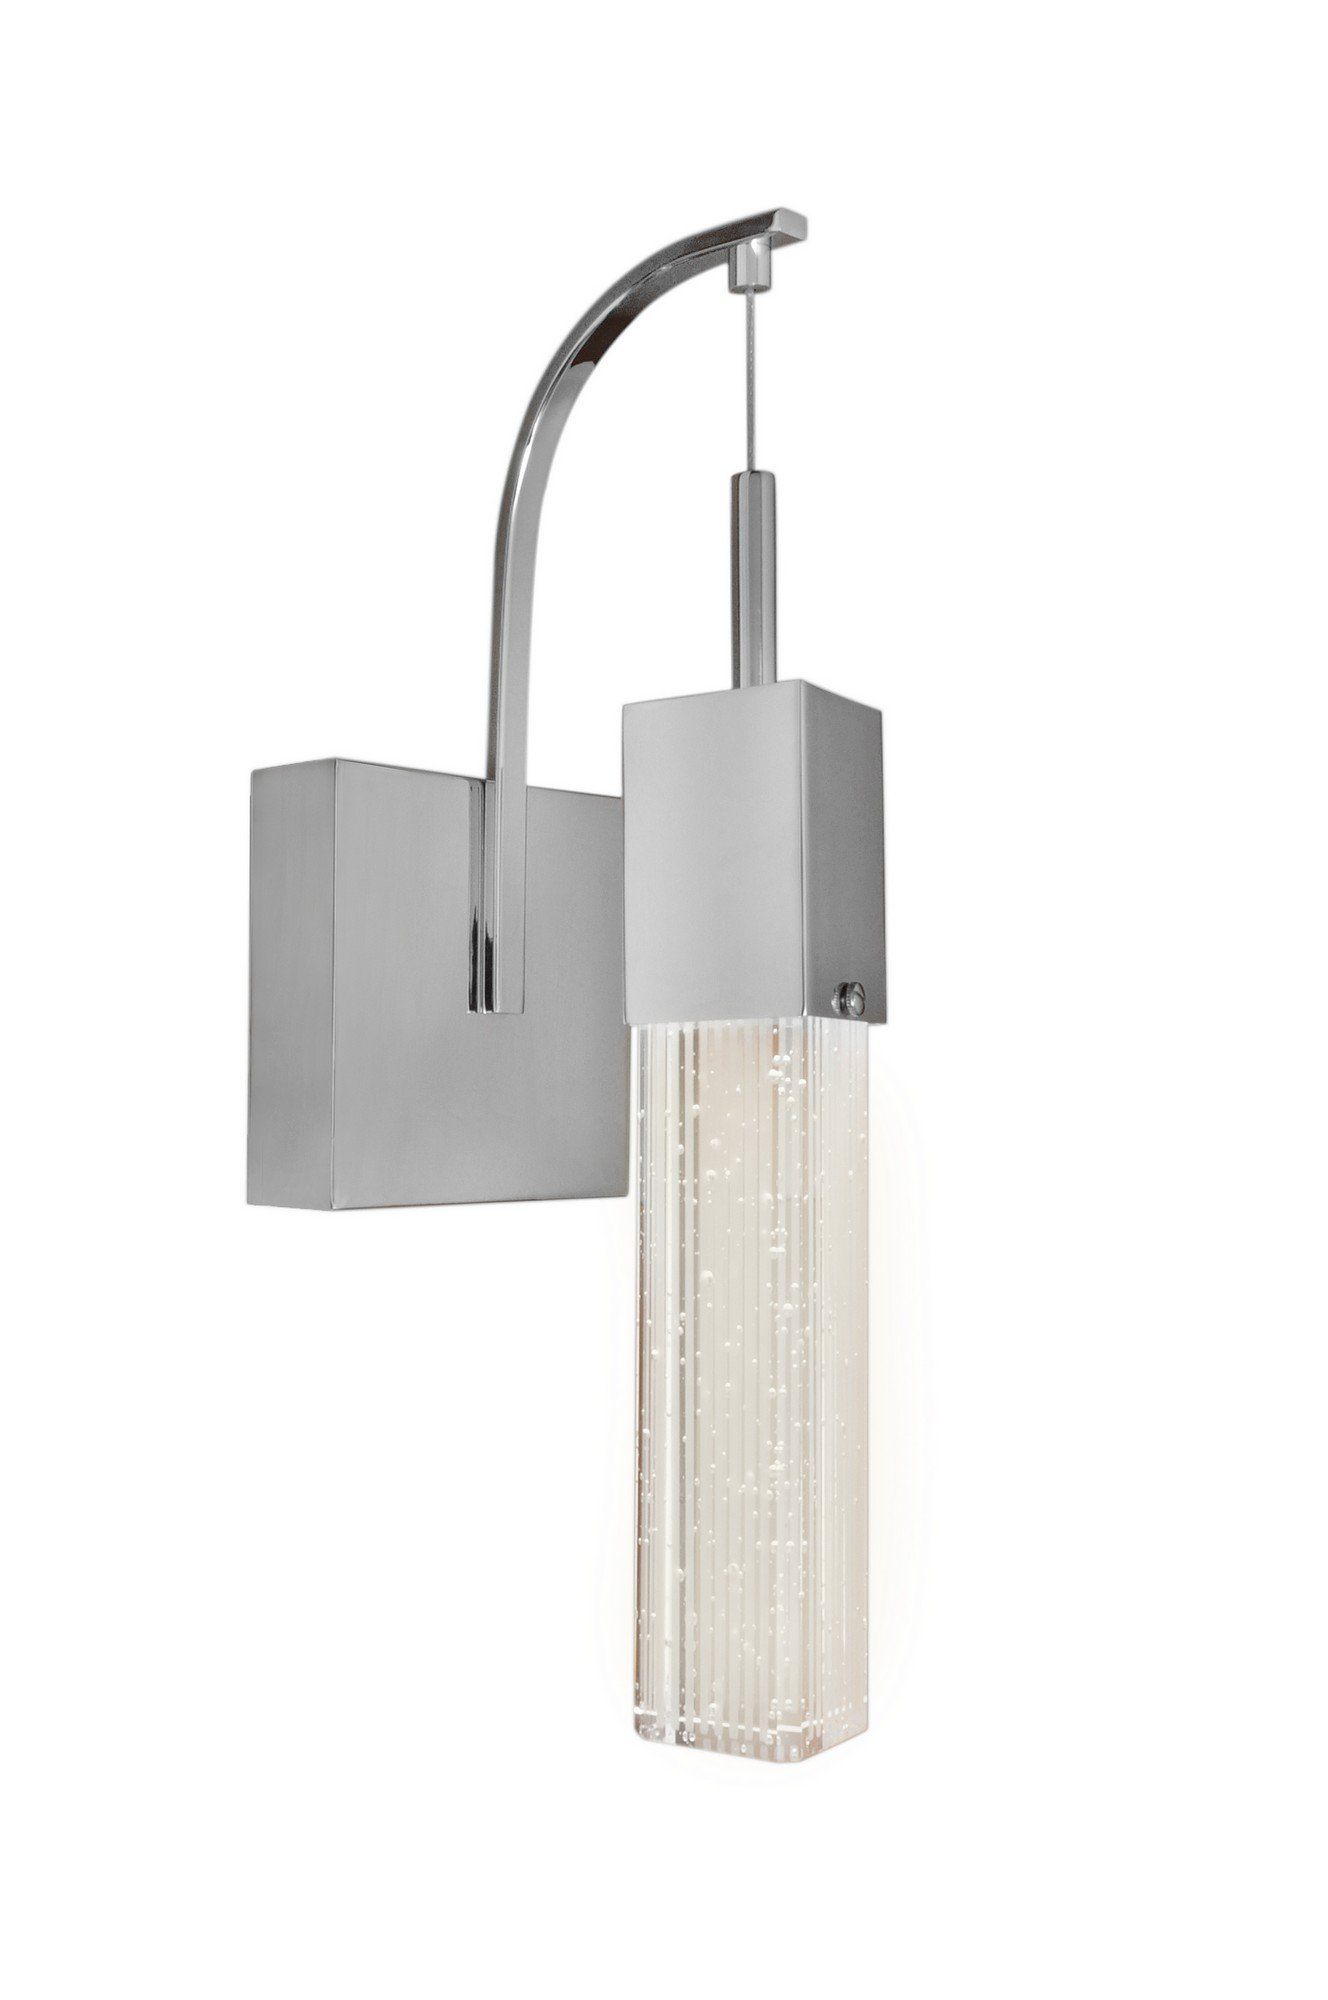 ET2 E22760-89PC Fizz III 1-Light LED Wall Sconce, Polished Chrome Finish, Etched/Bubble Glass, PCB LED Bulb, Wet Safety Rated, 3000K Color Temp., Shade Material, 320 Rated Lumens